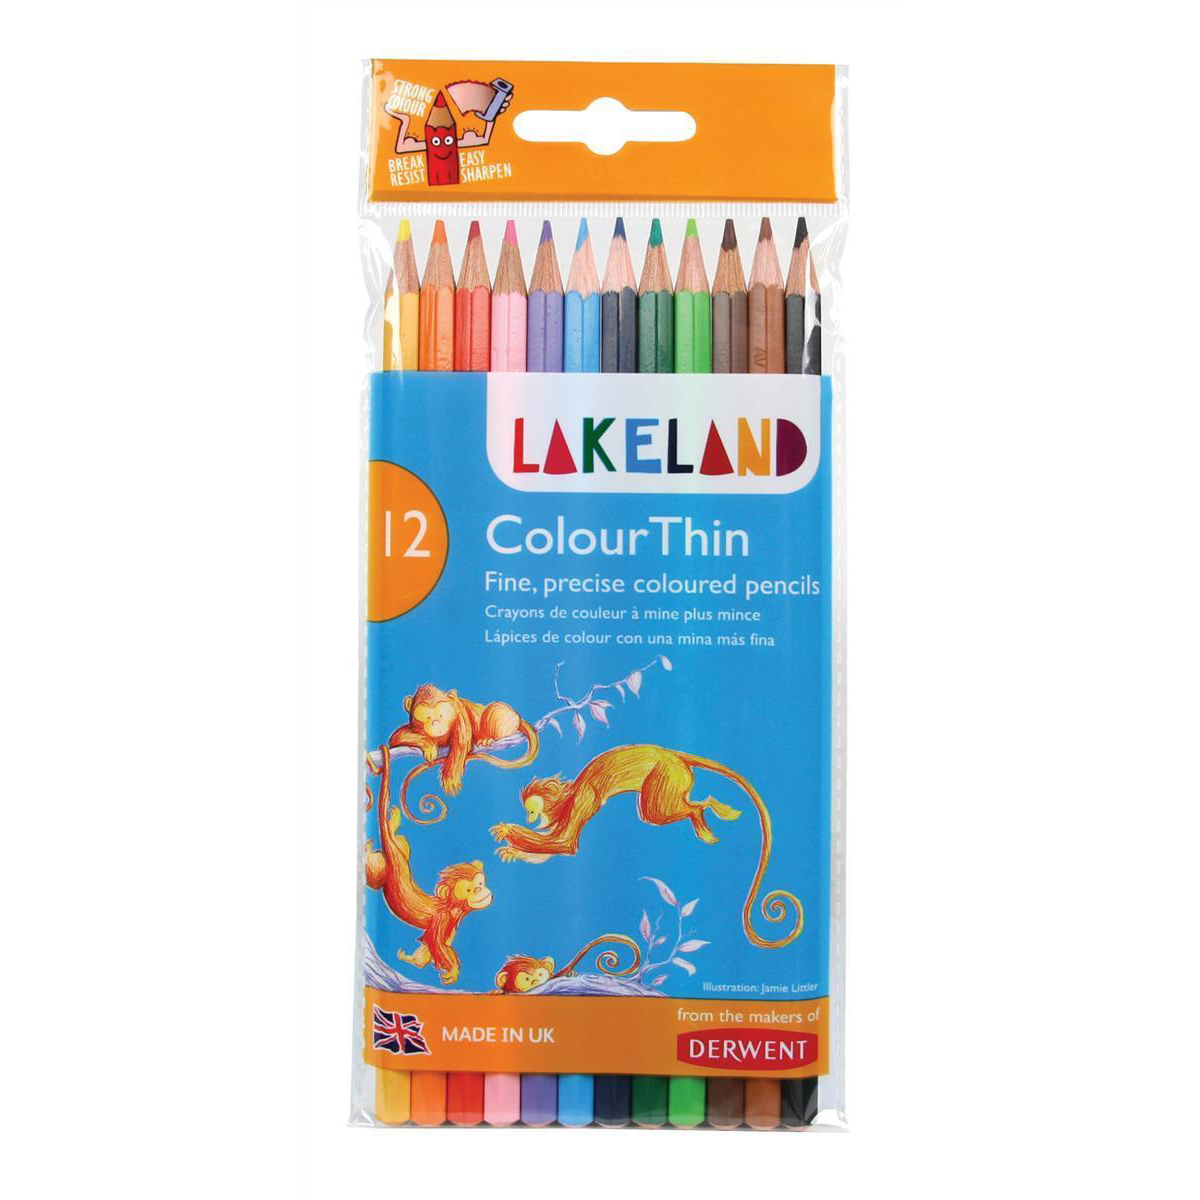 Lakeland Colourthin Colouring Pencils Hexagonal Barrel Hard-wearing Assorted Ref 0700077 Pack 12